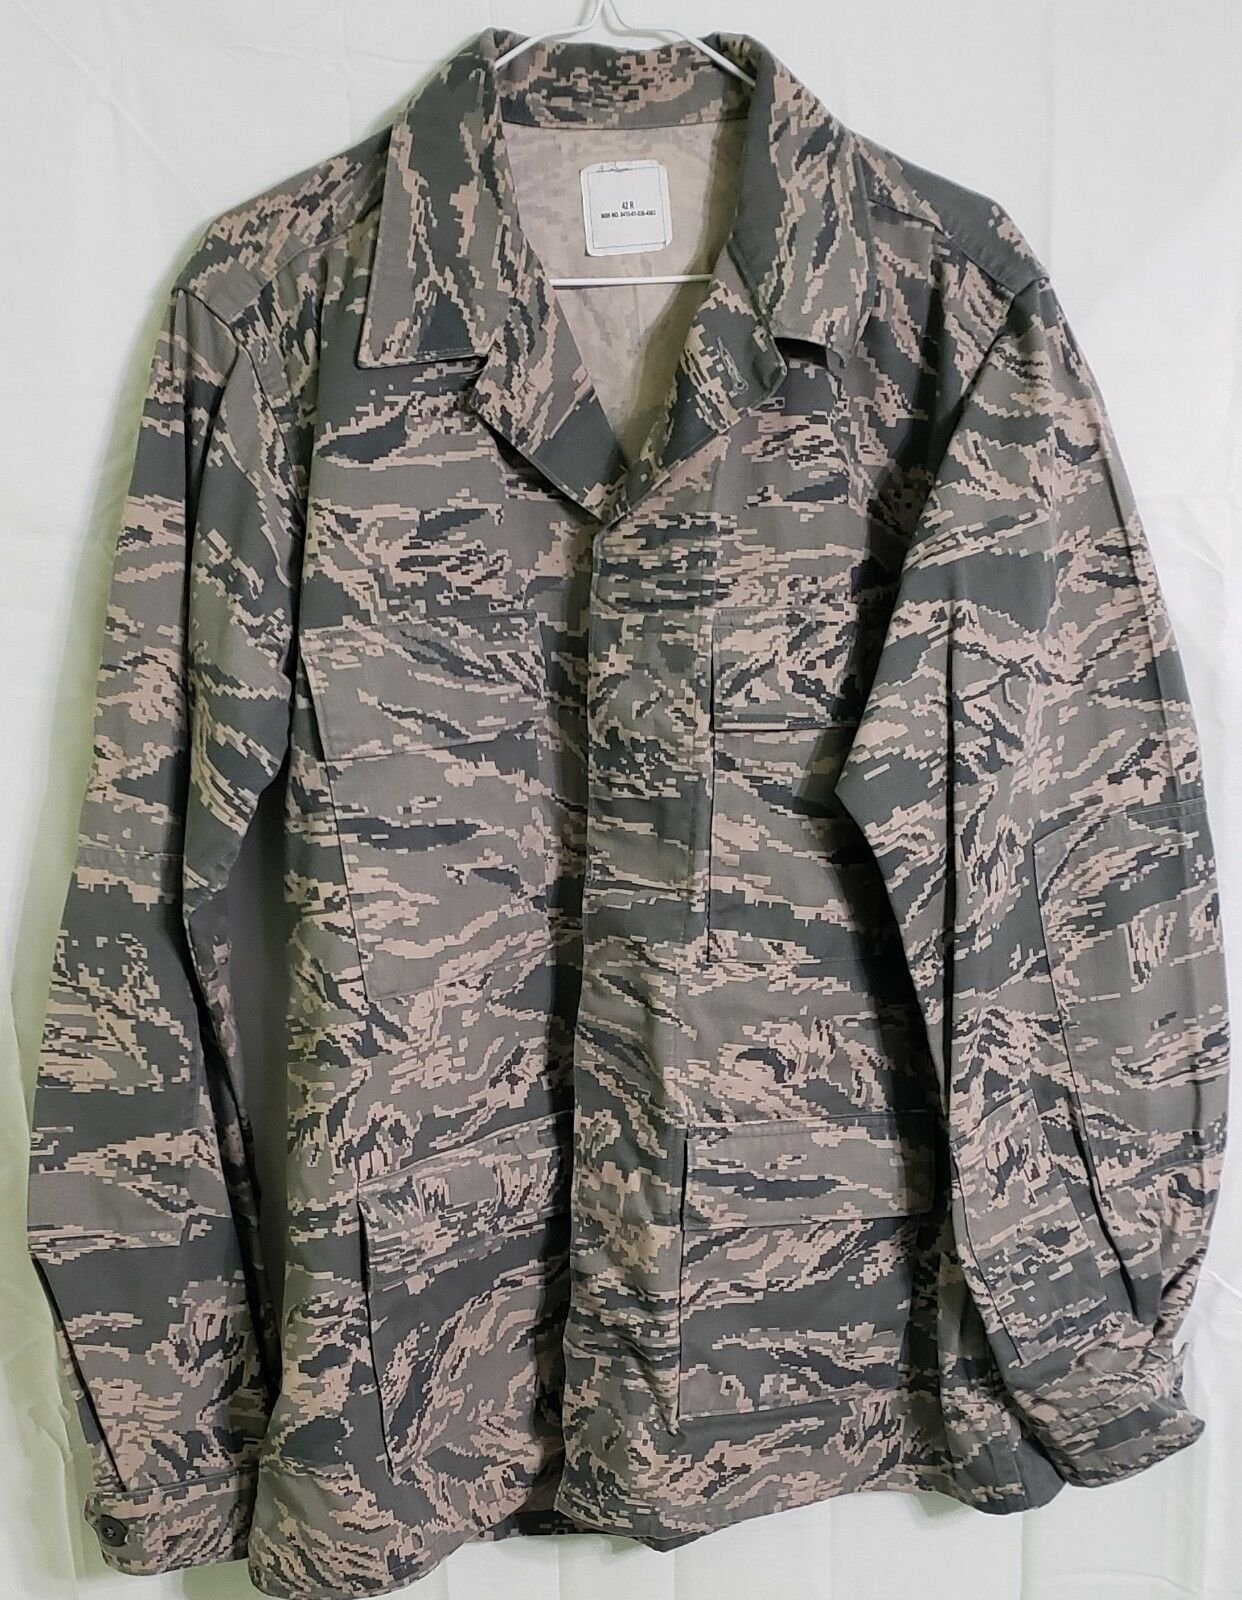 Coat, Man's Utility, Air Force Camouflage pattern 8415-01-536-4583 (42R)